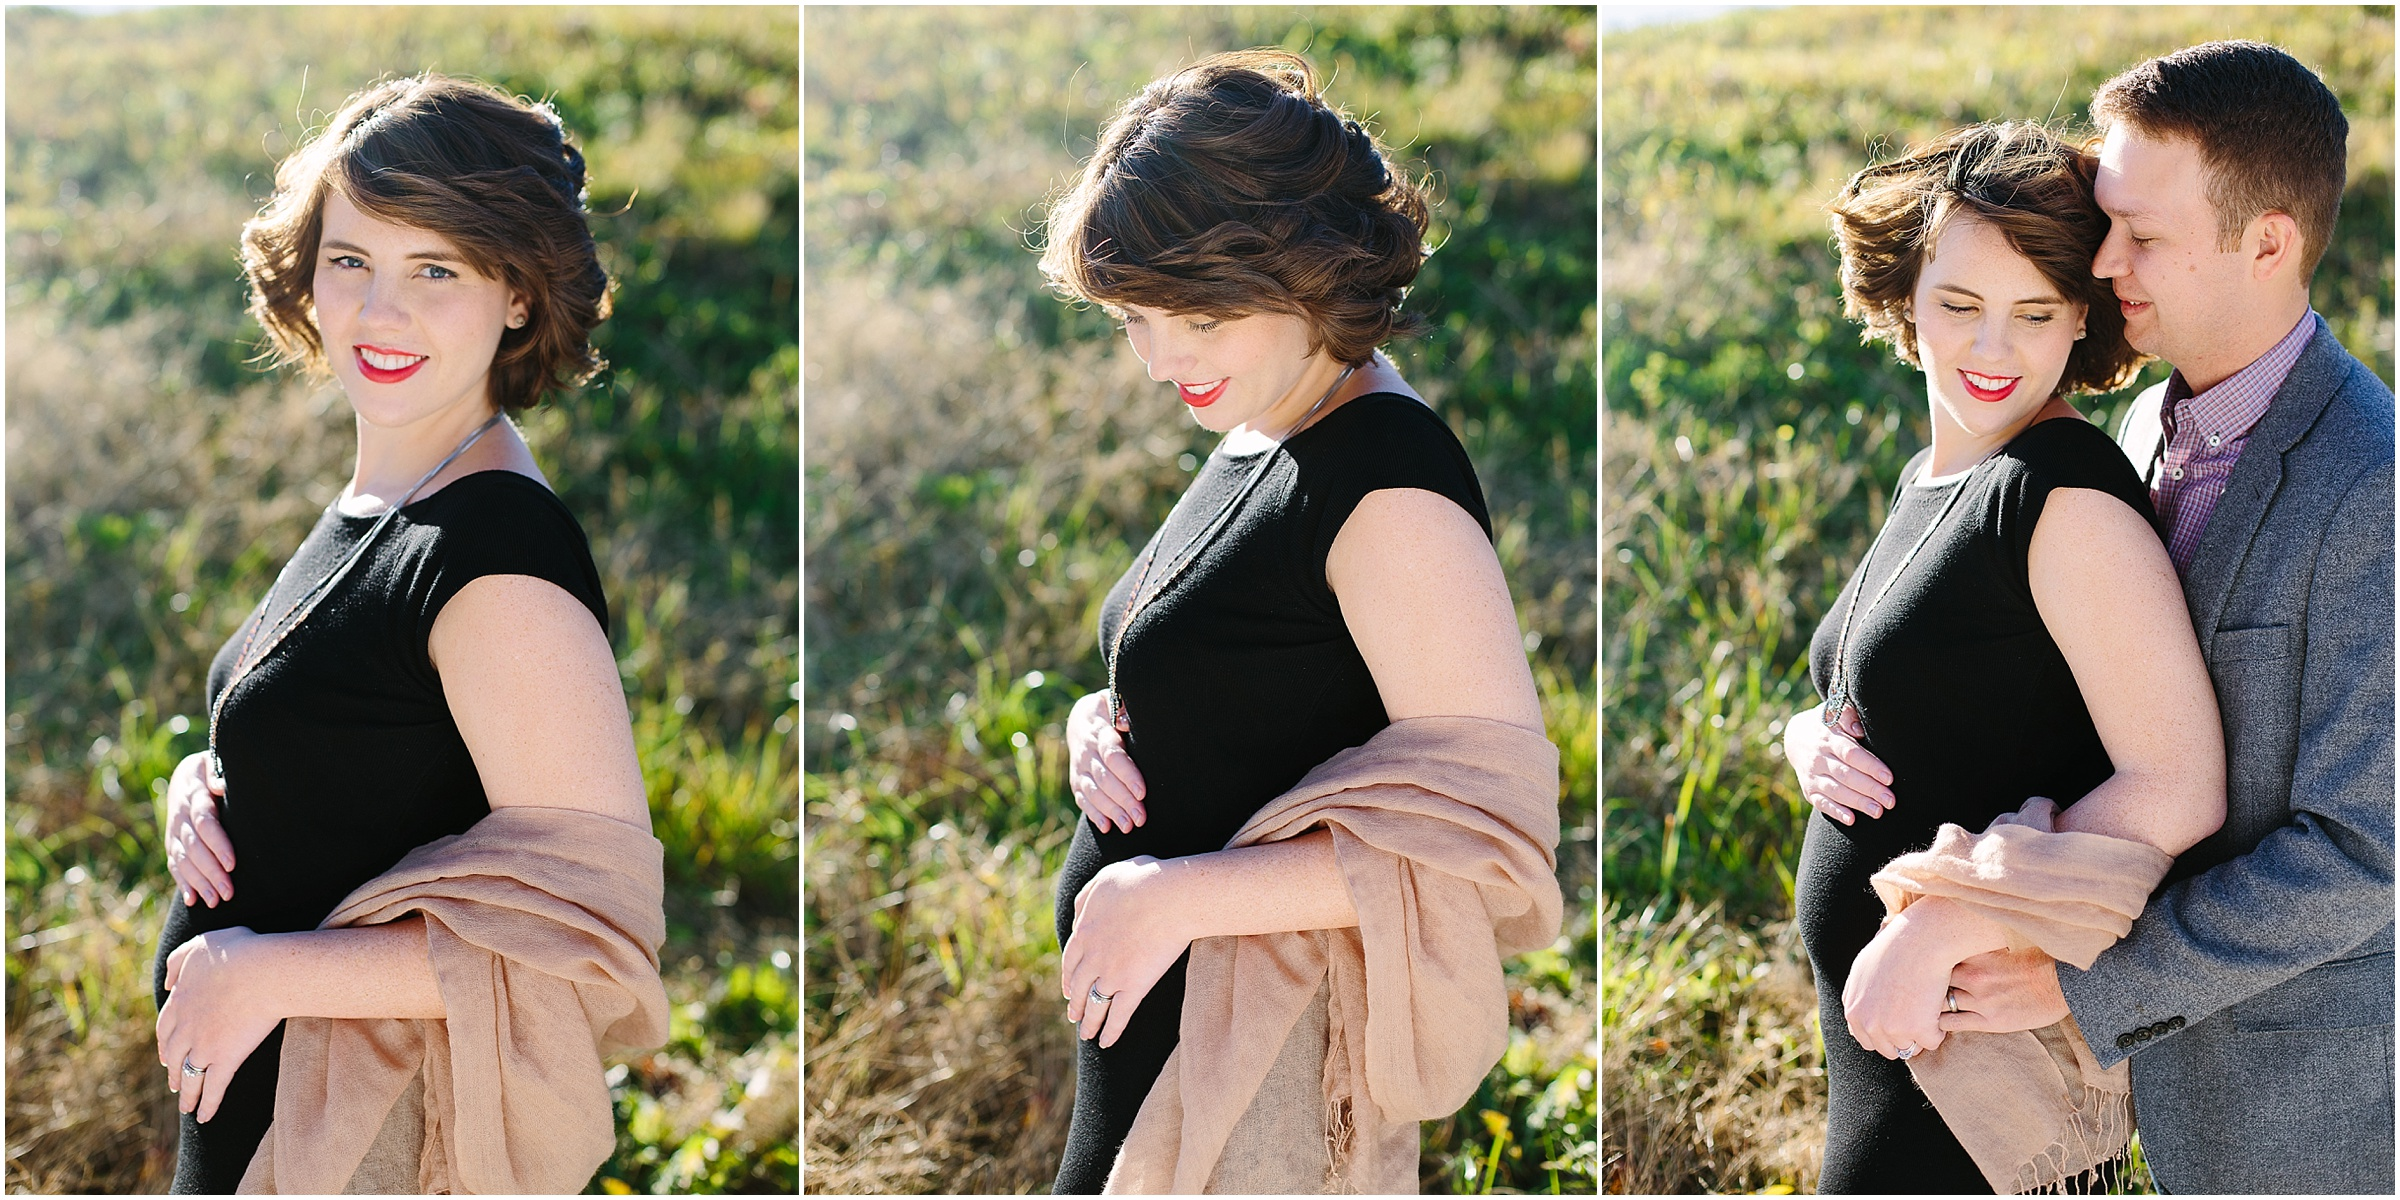 Outdoor maternity session by Emily Lapish Photography in Chattanooga, TN